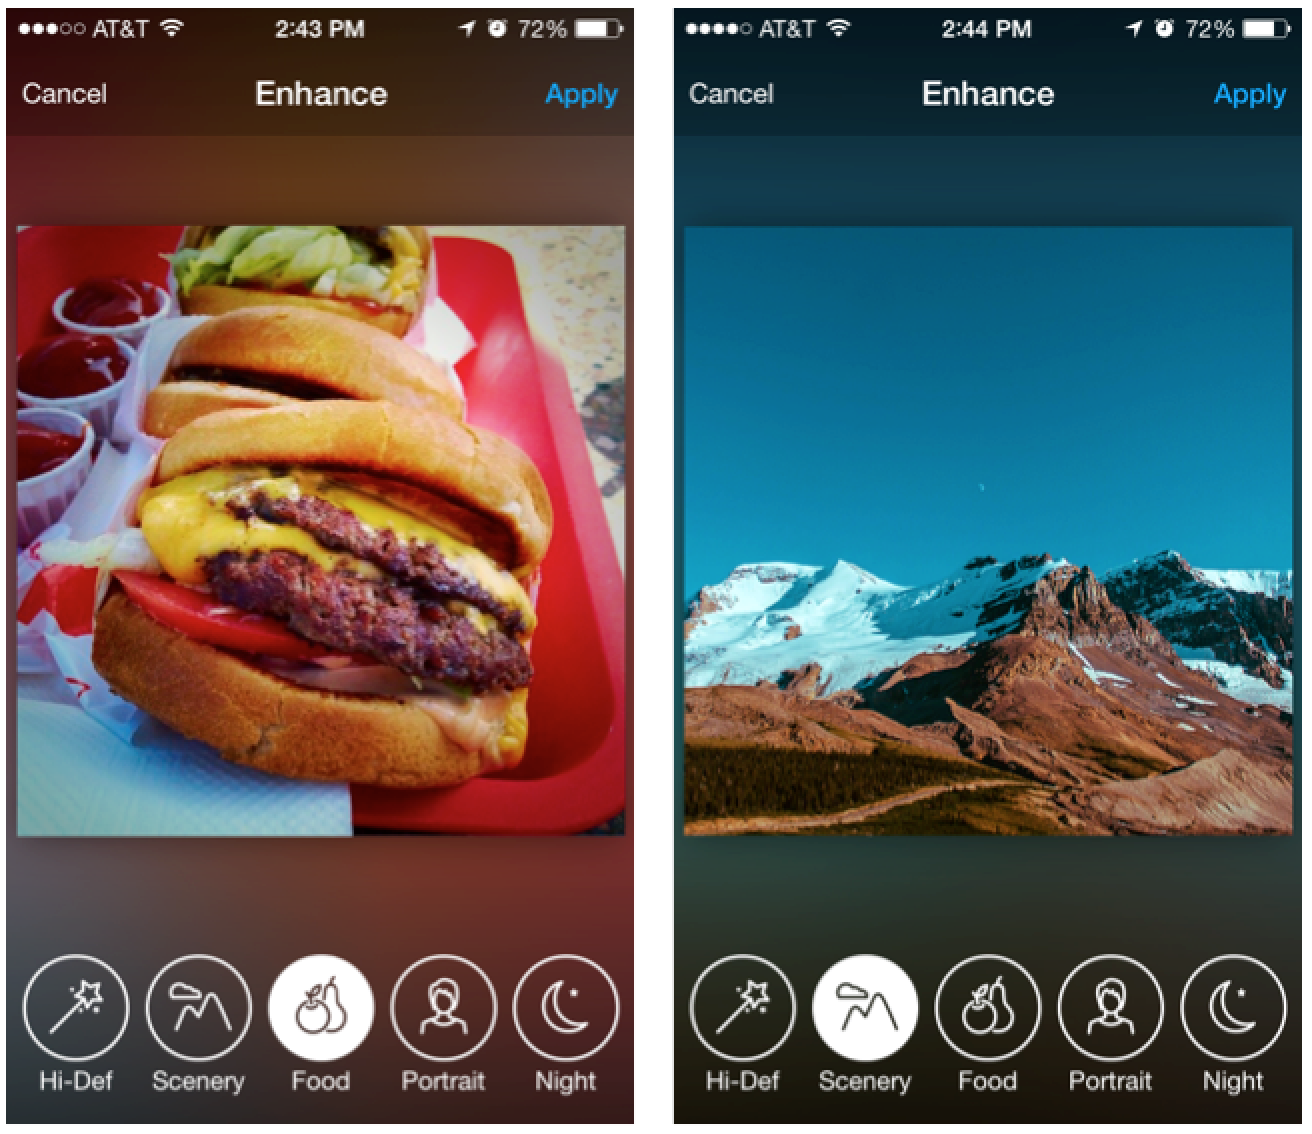 Apply some one-tap magic with our all new Enhance options.